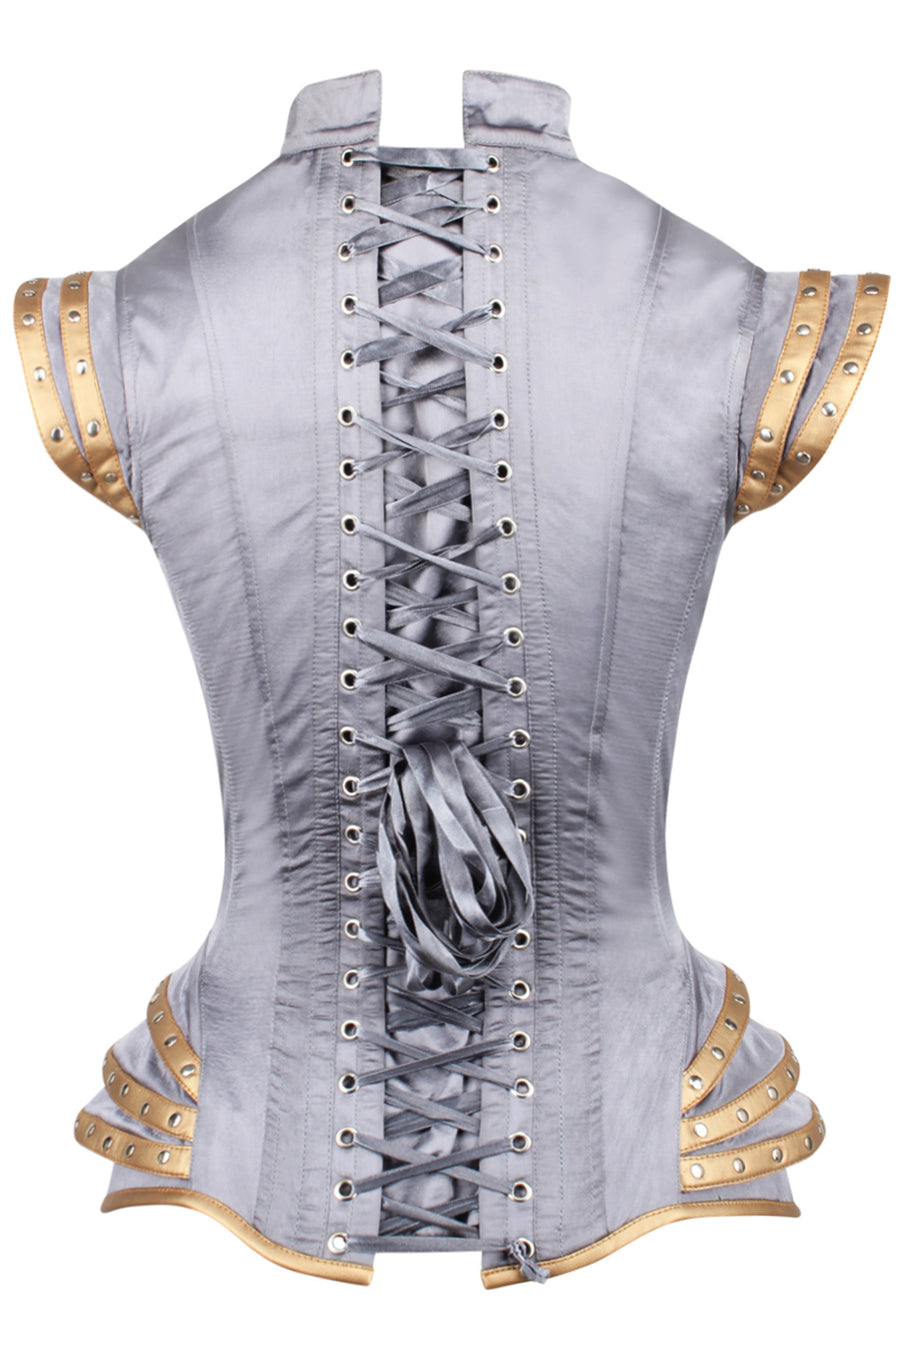 50's Space Captain Steampunk Underbust